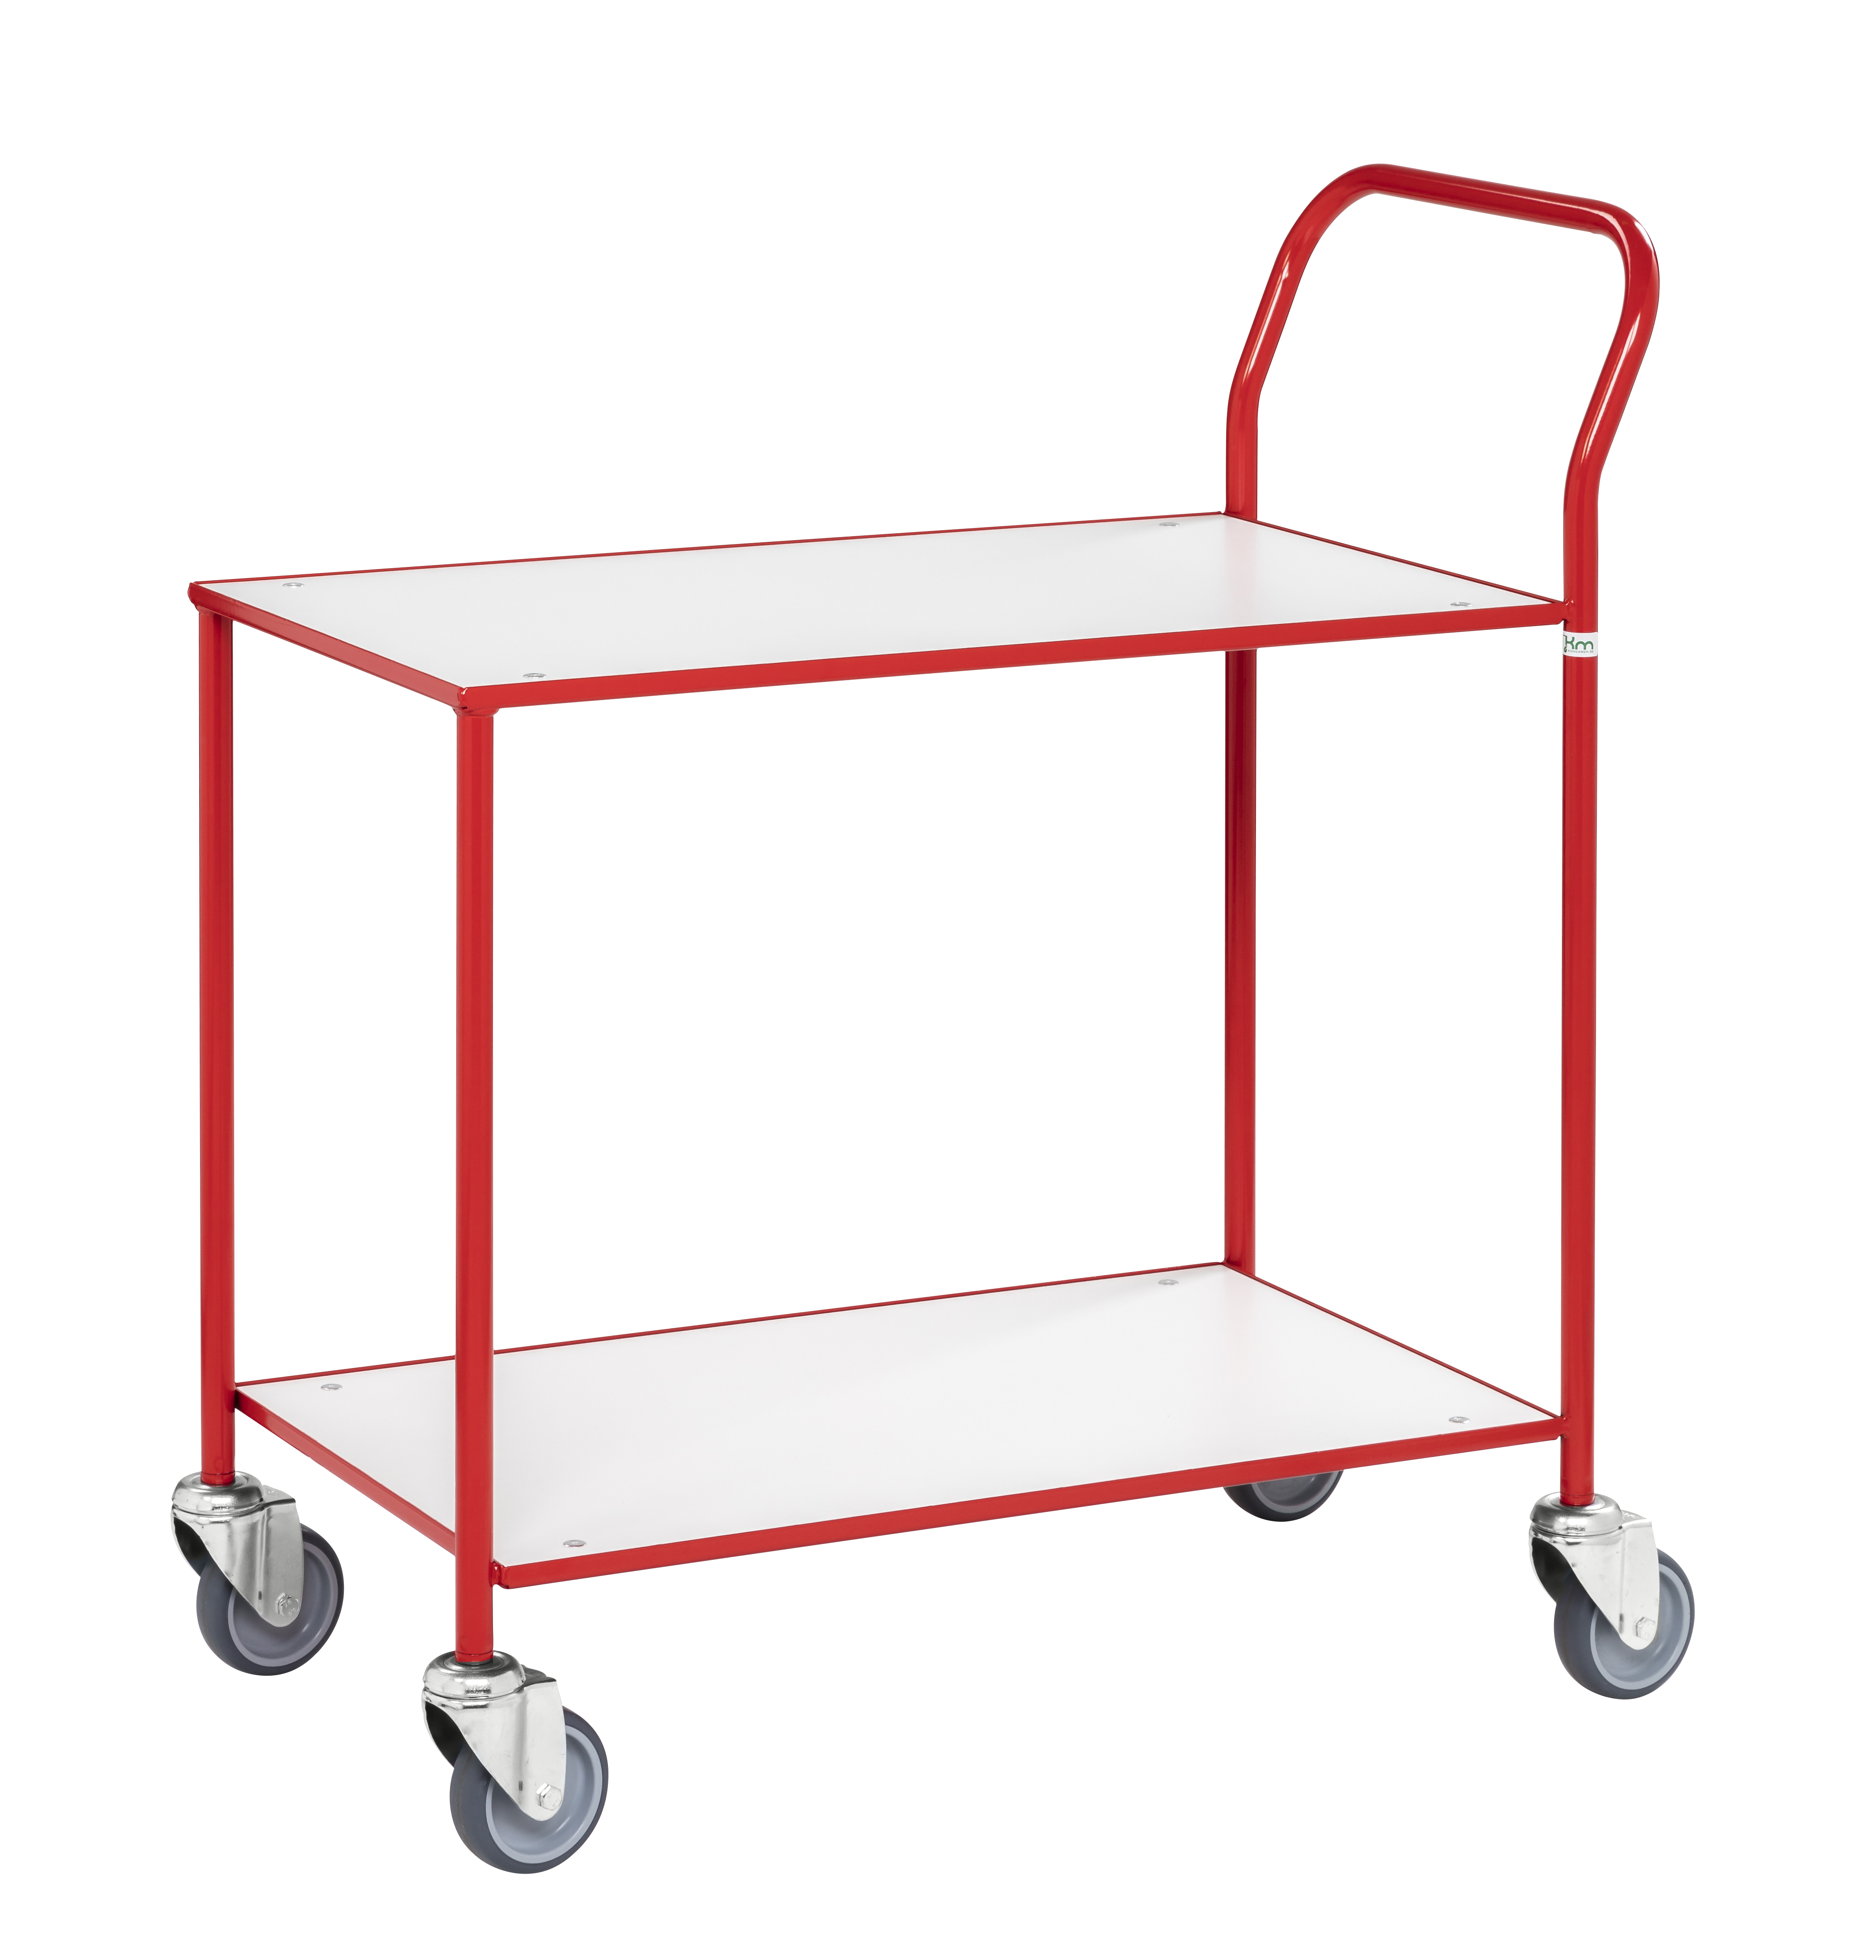 Small table trolley, fully welded KM183-6